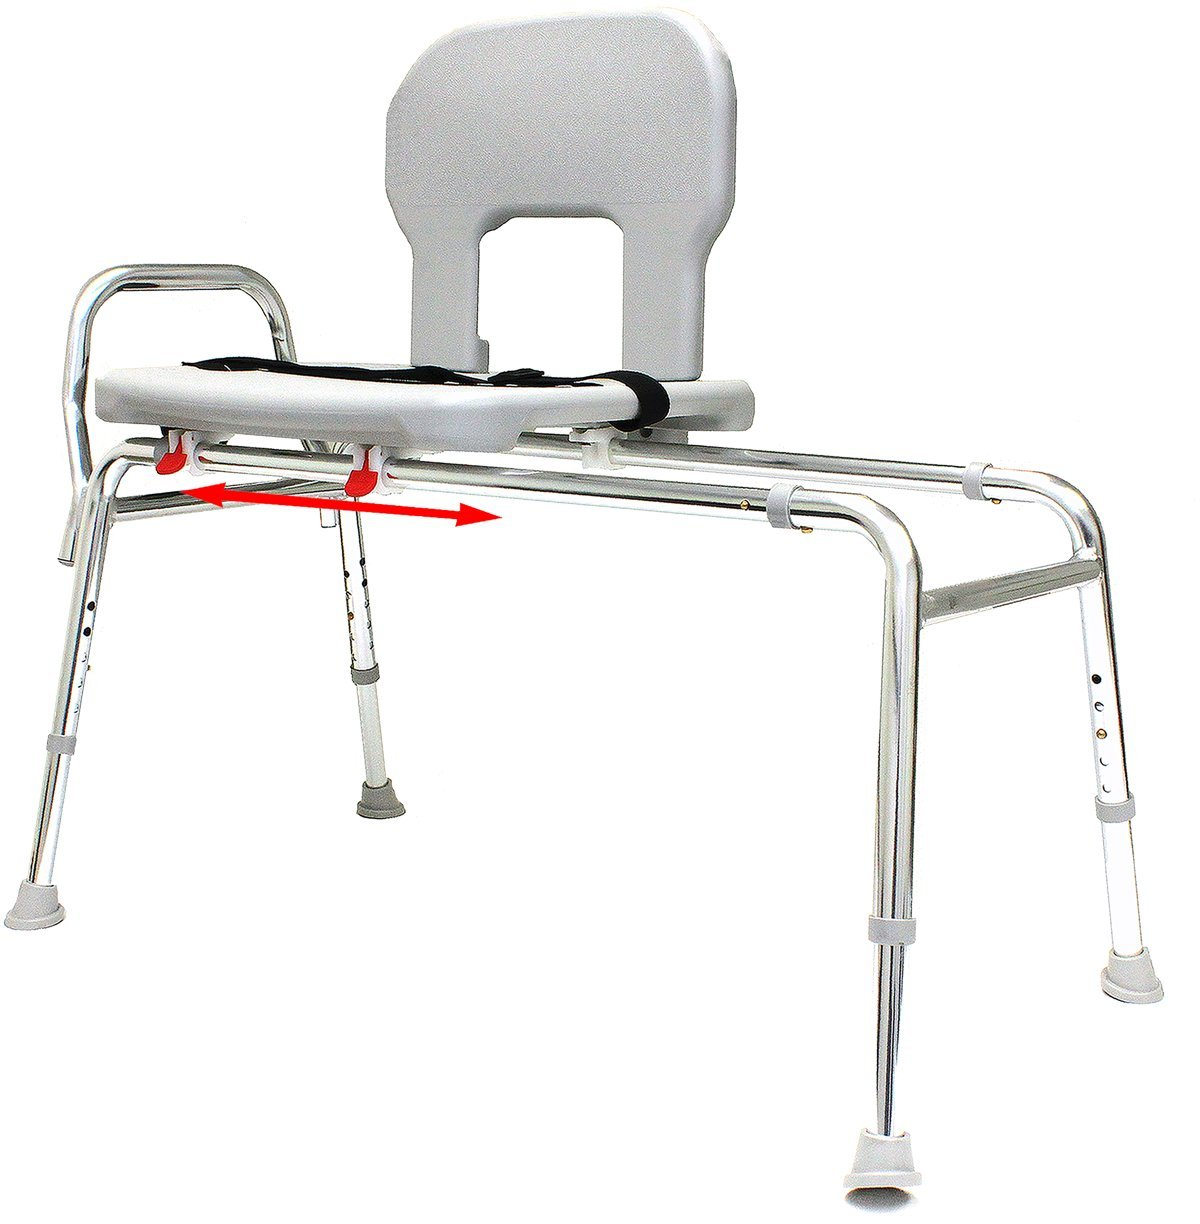 Tall Bariatric Sliding Bath Transfer Bench (56291) - Long (Base Length: 48.5'' - 50'') - Heavy-Duty Shower Bathtub Chair - Eagle Health Supplies